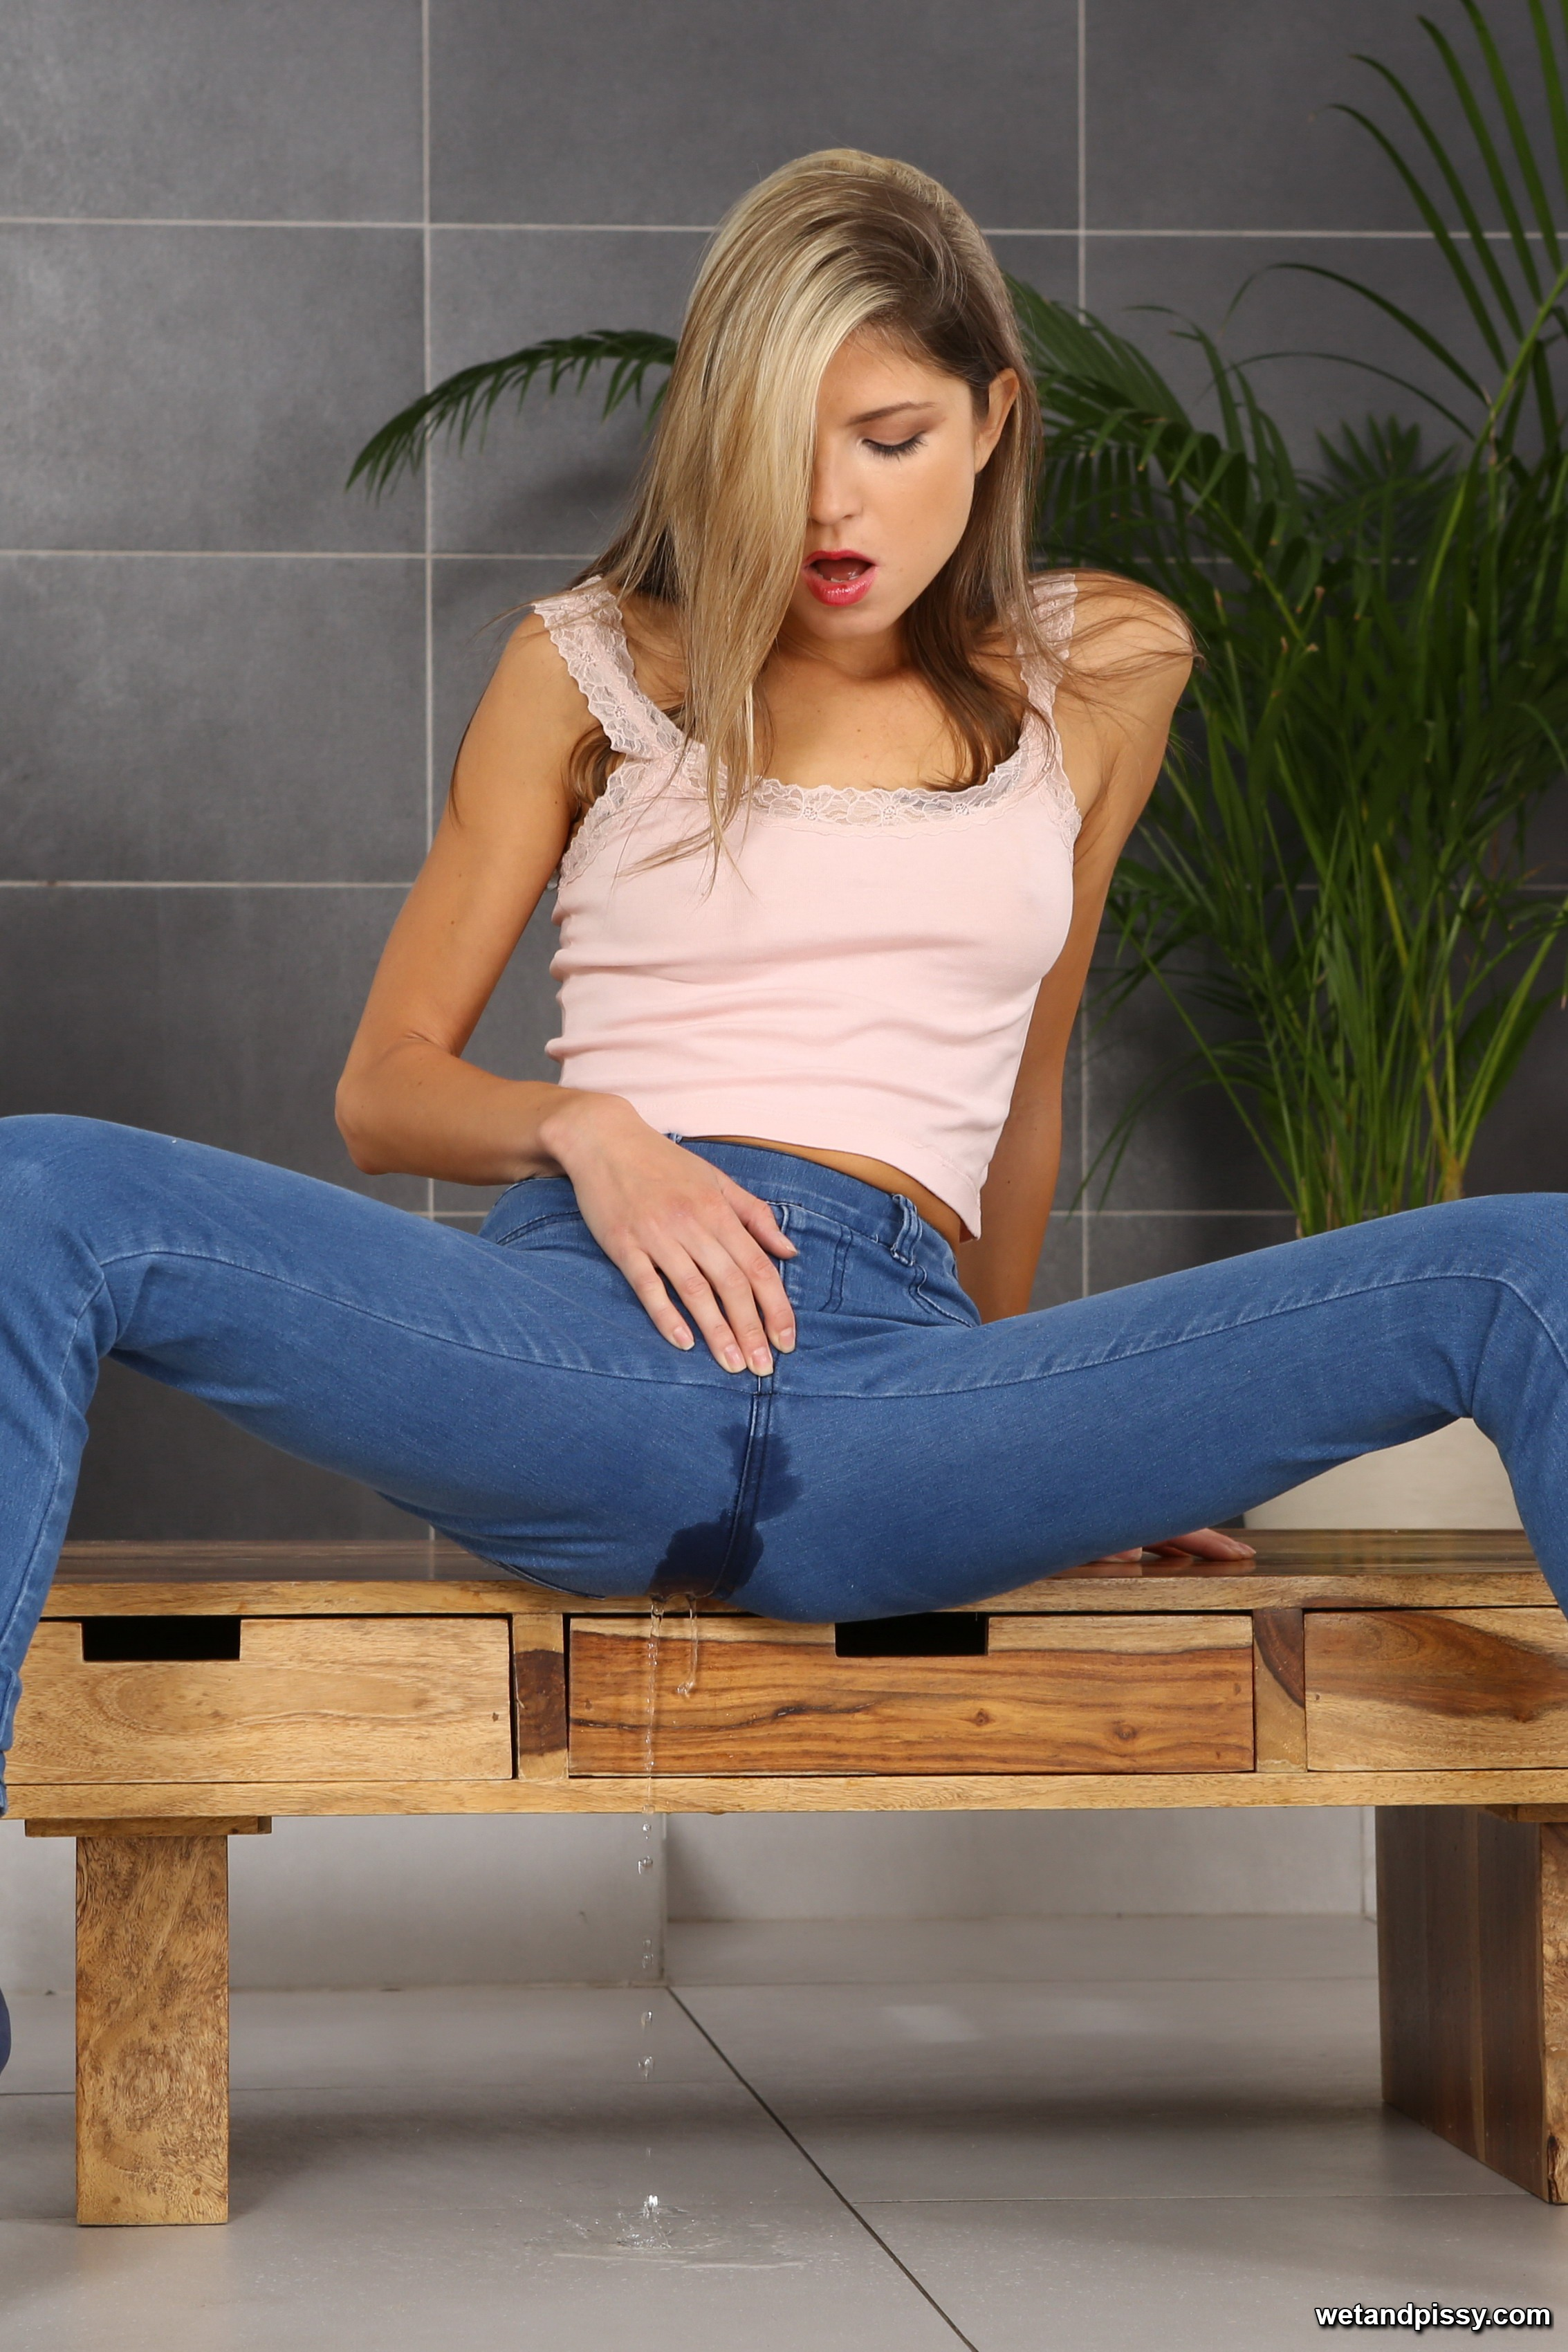 Gina Gerson - Filthy sly puss Gina catches her piss in a